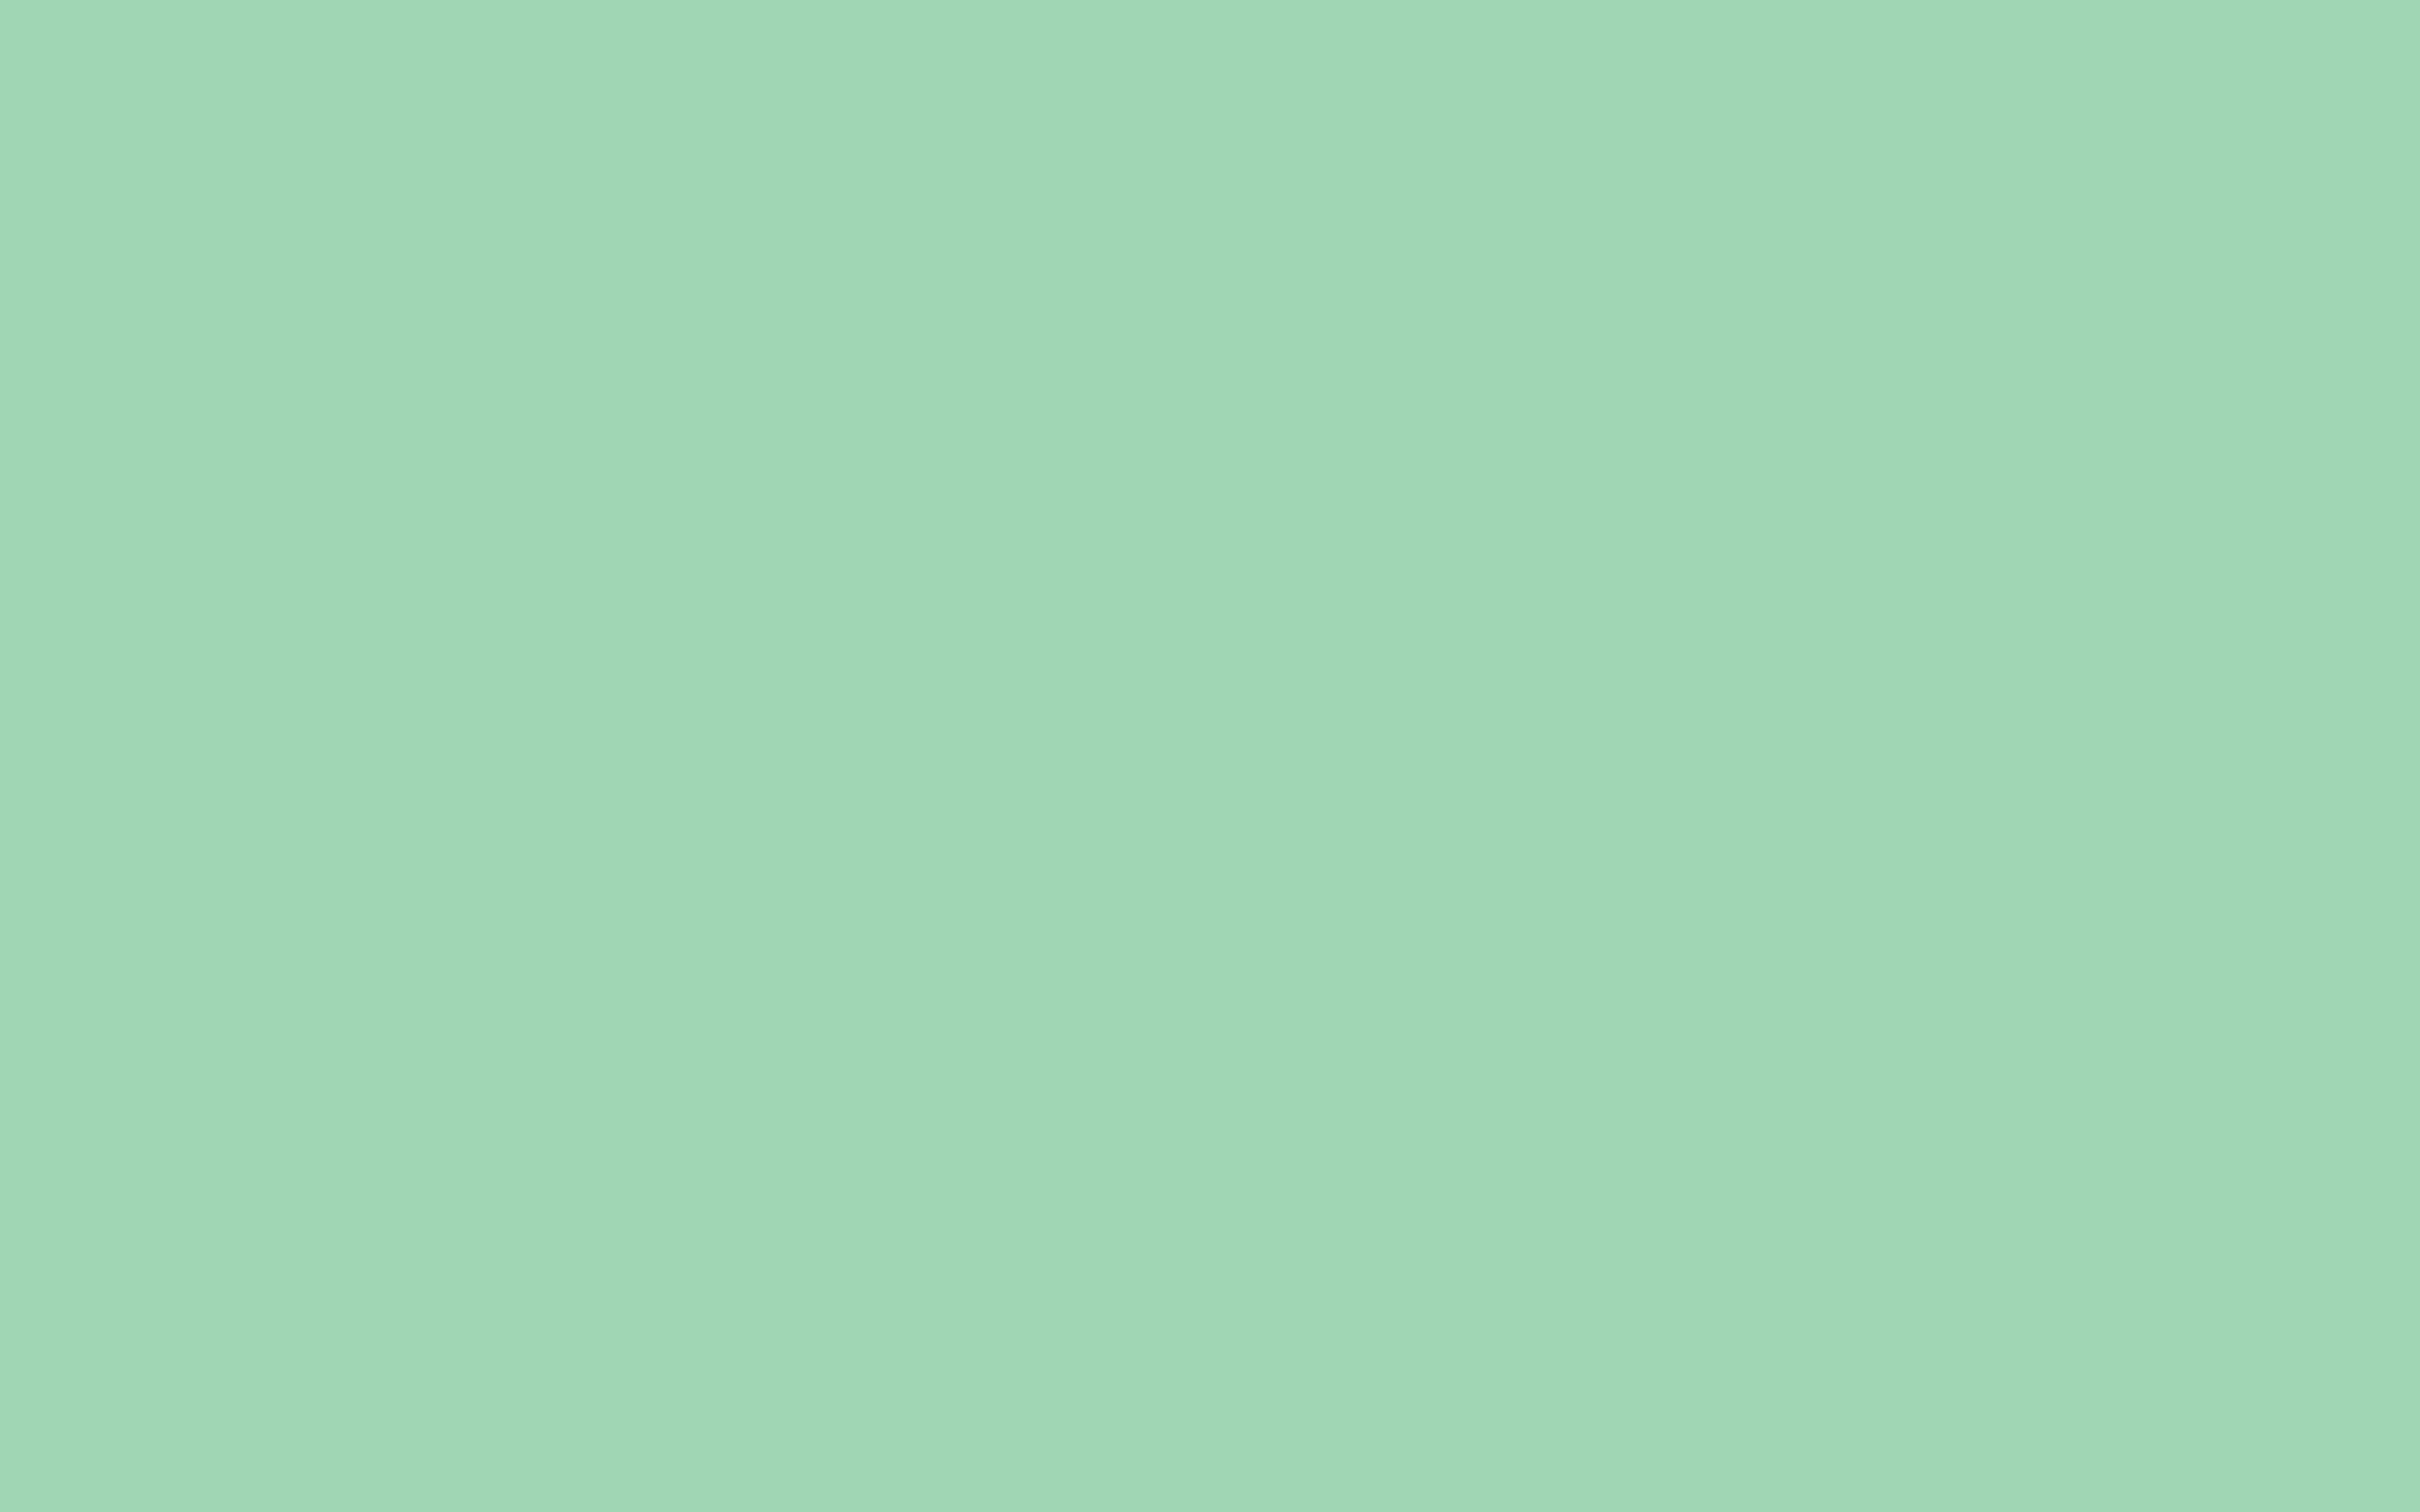 2560x1600 Turquoise Green Solid Color Background